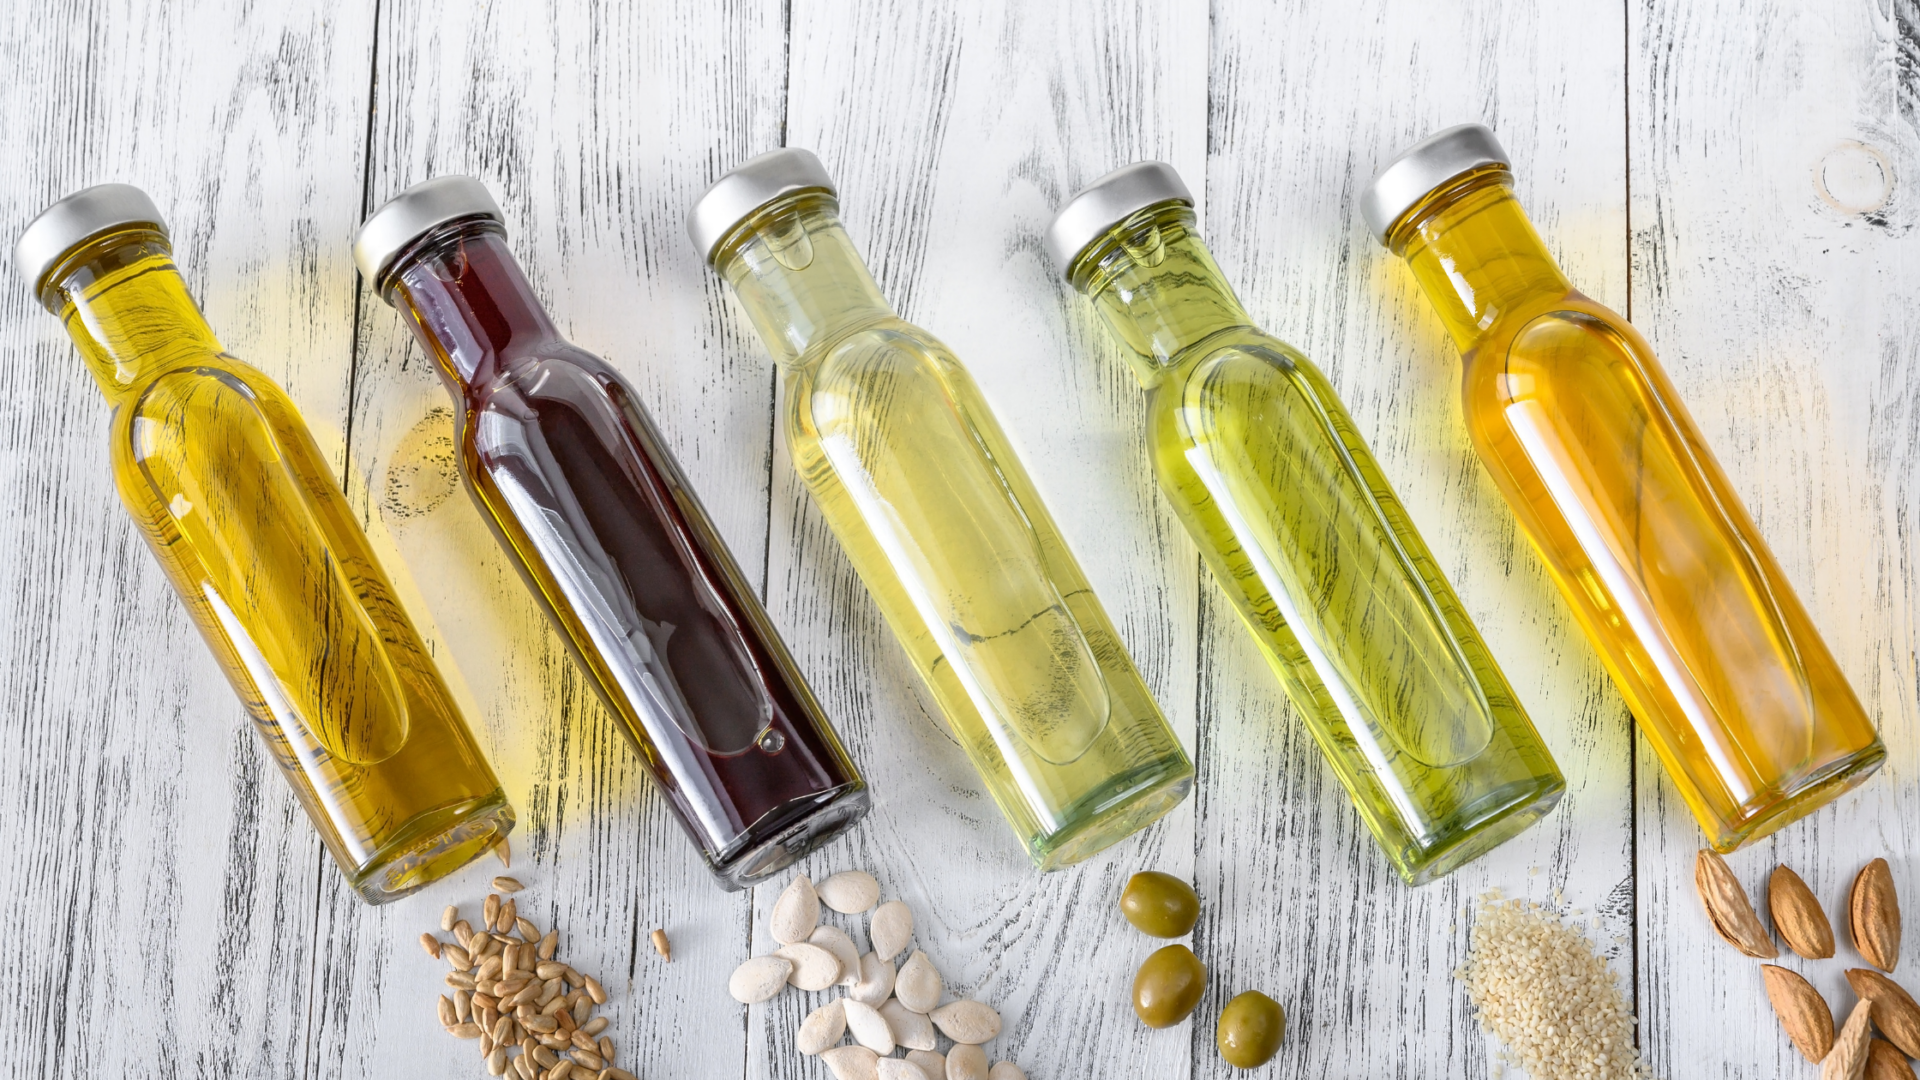 Hello Dietitian, Which Cooking Oil is the Healthiest?